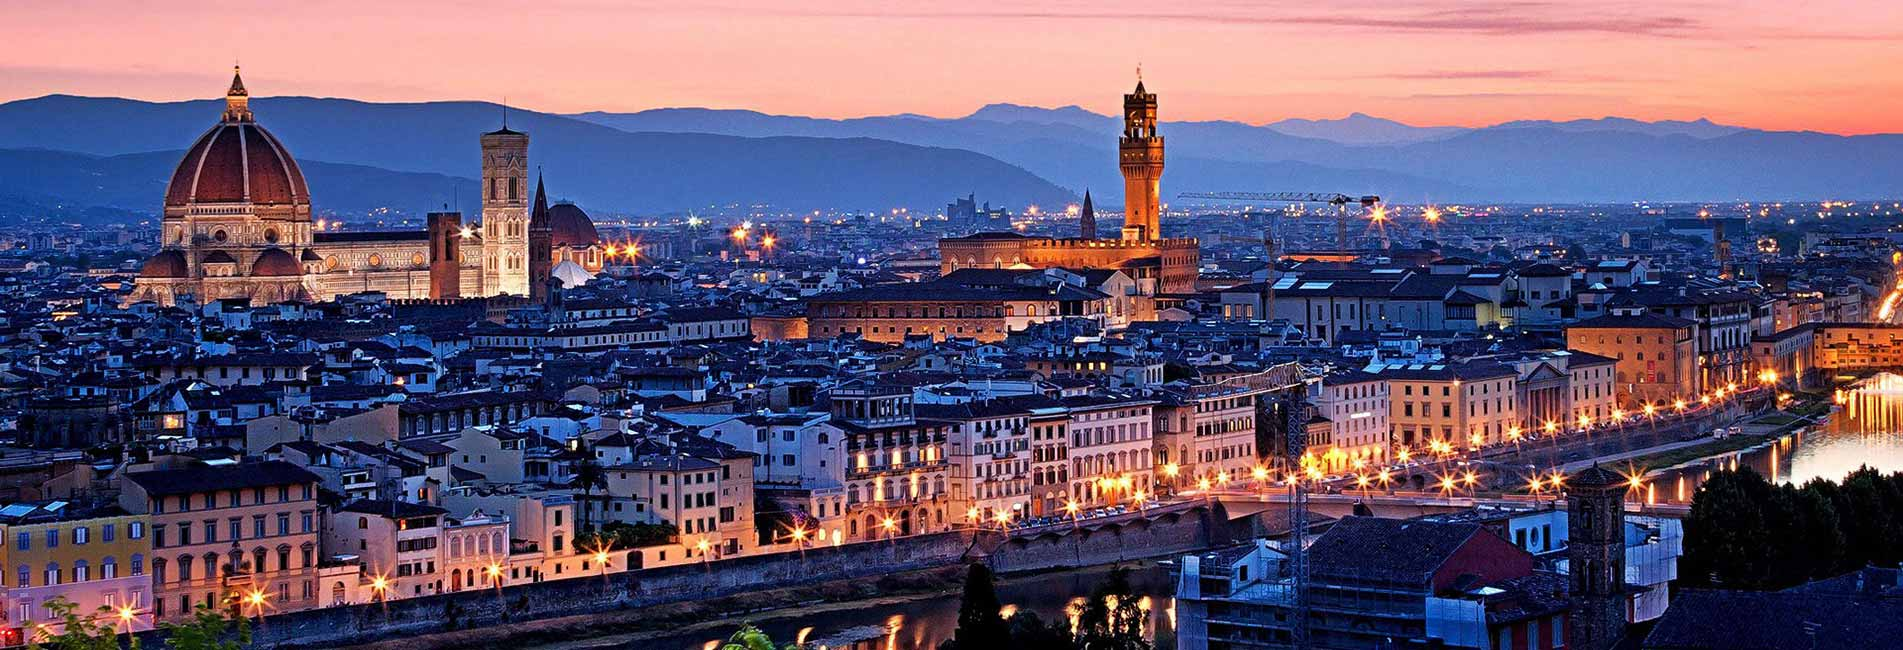 florence_by_night_landscape_view